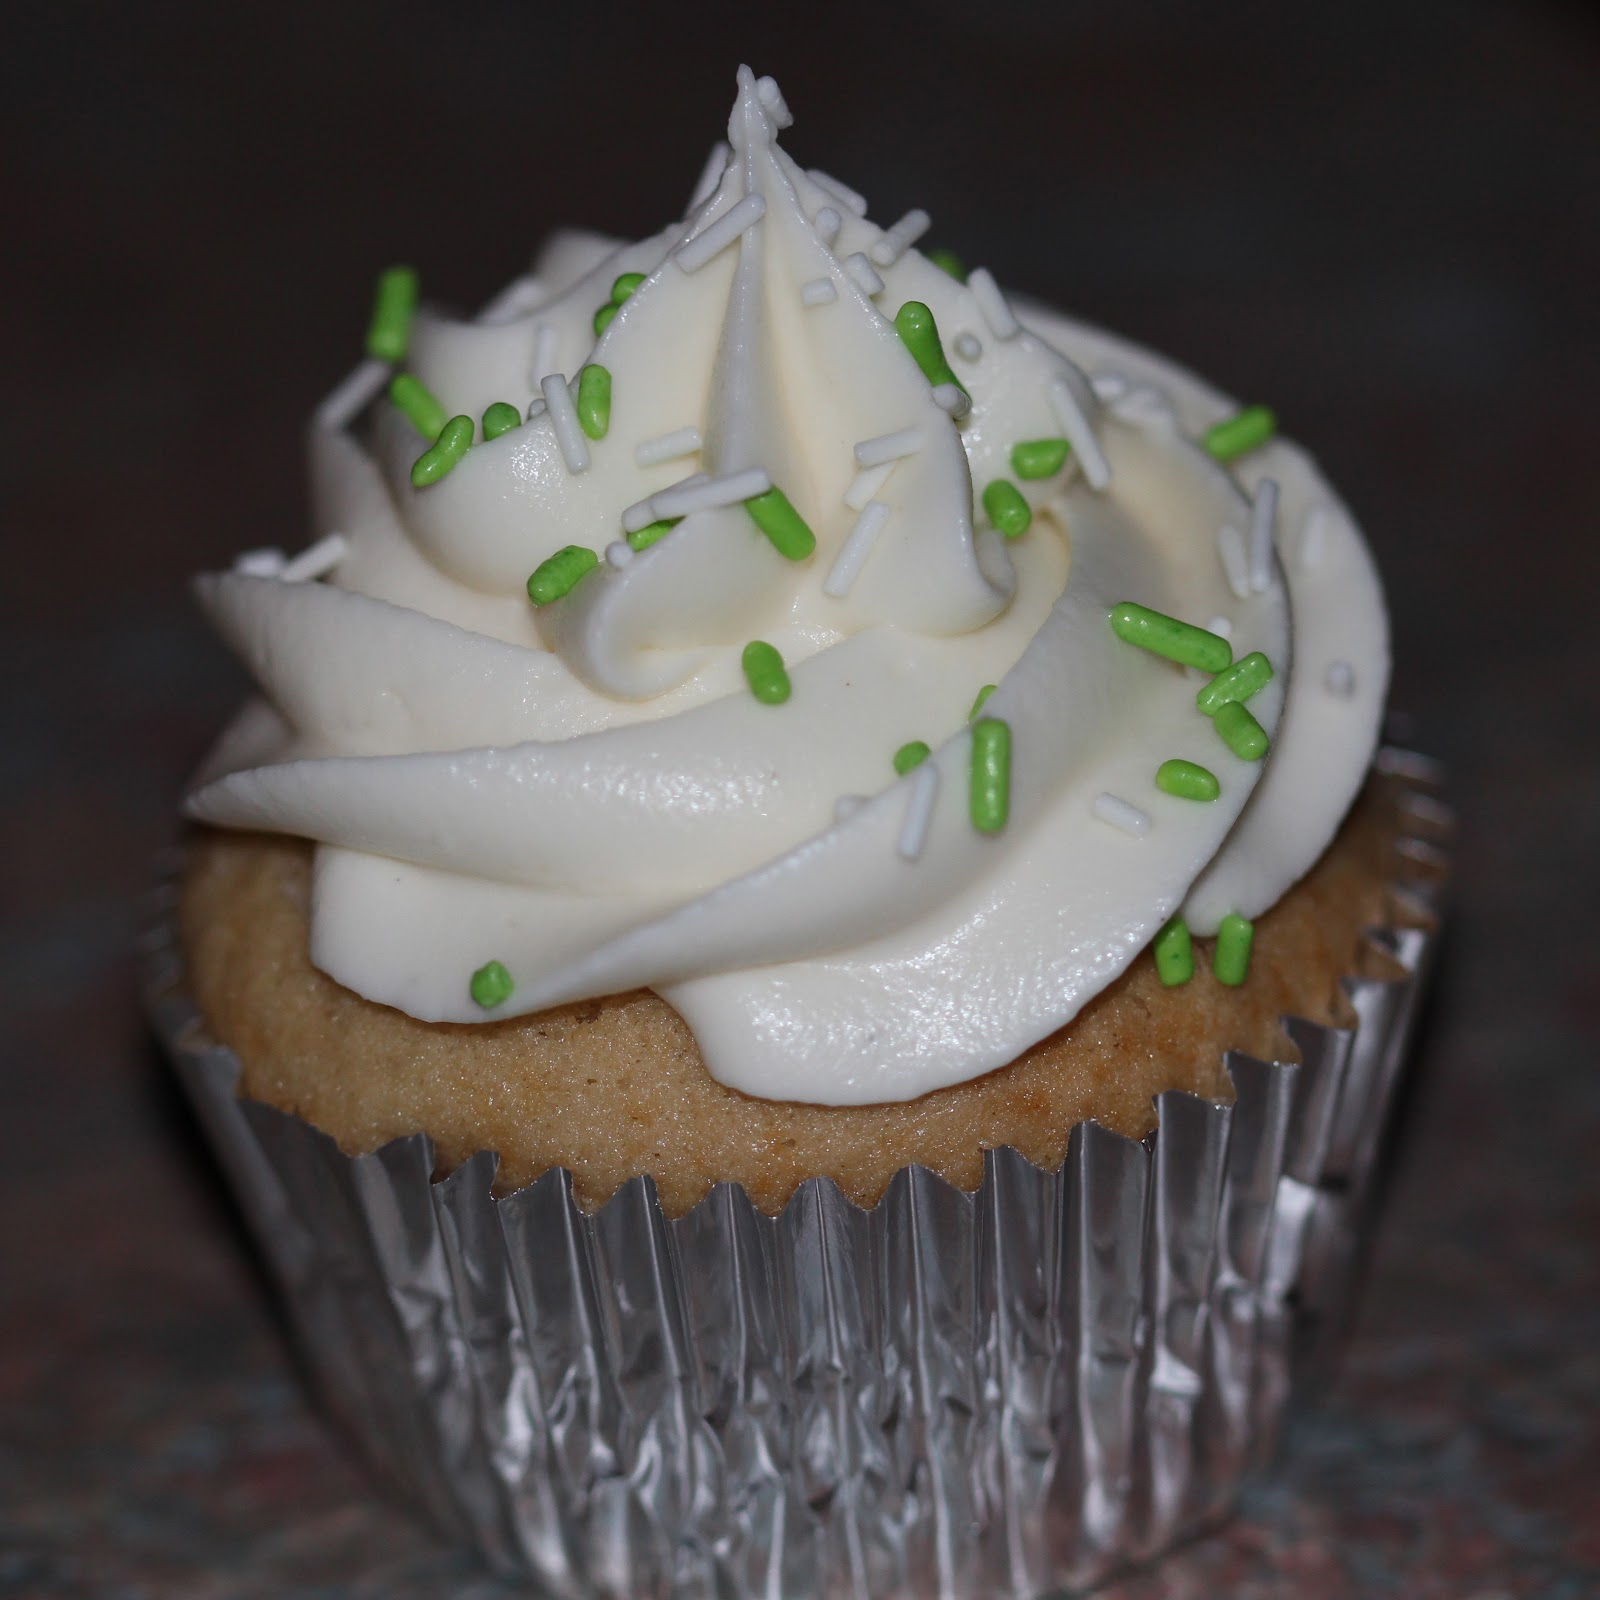 ... next cupcakes to be featured on high altitude cupcakes and for a very